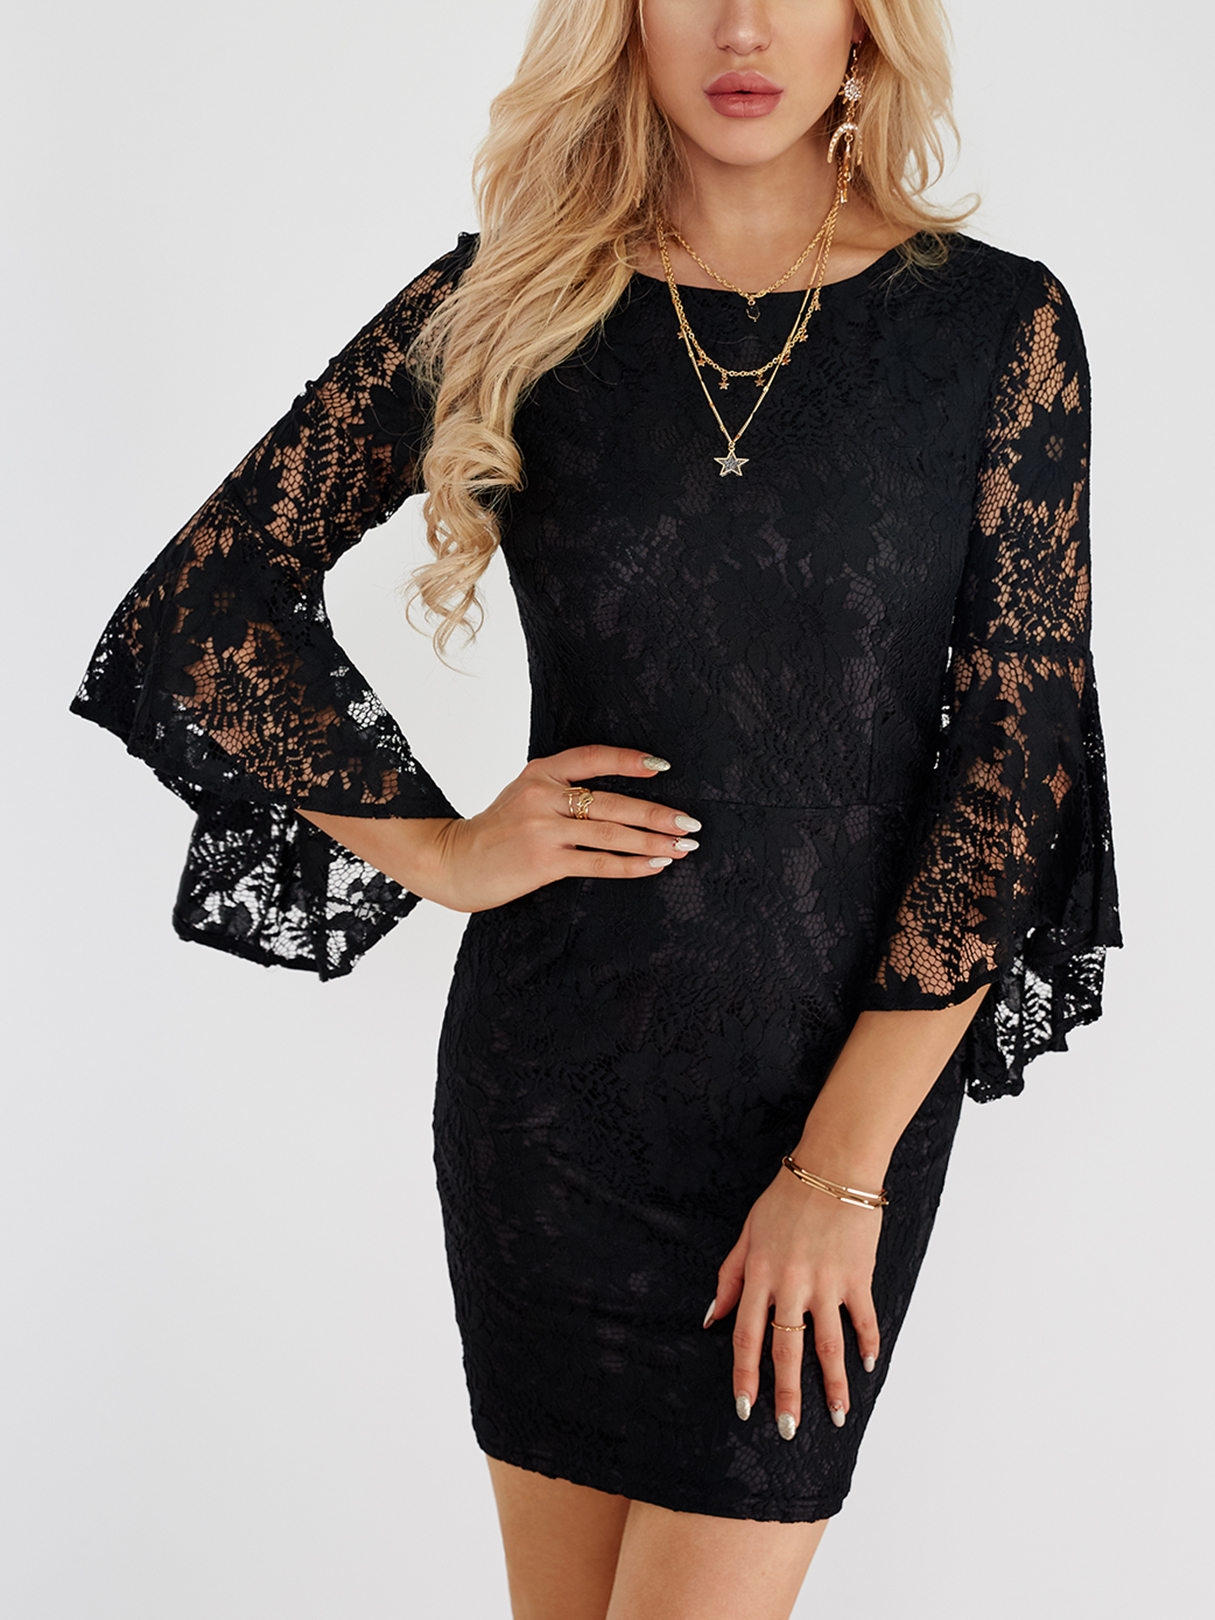 Black Lace Details Flared Sleeves Mini Dresses lace insert flared sleeves mini dress